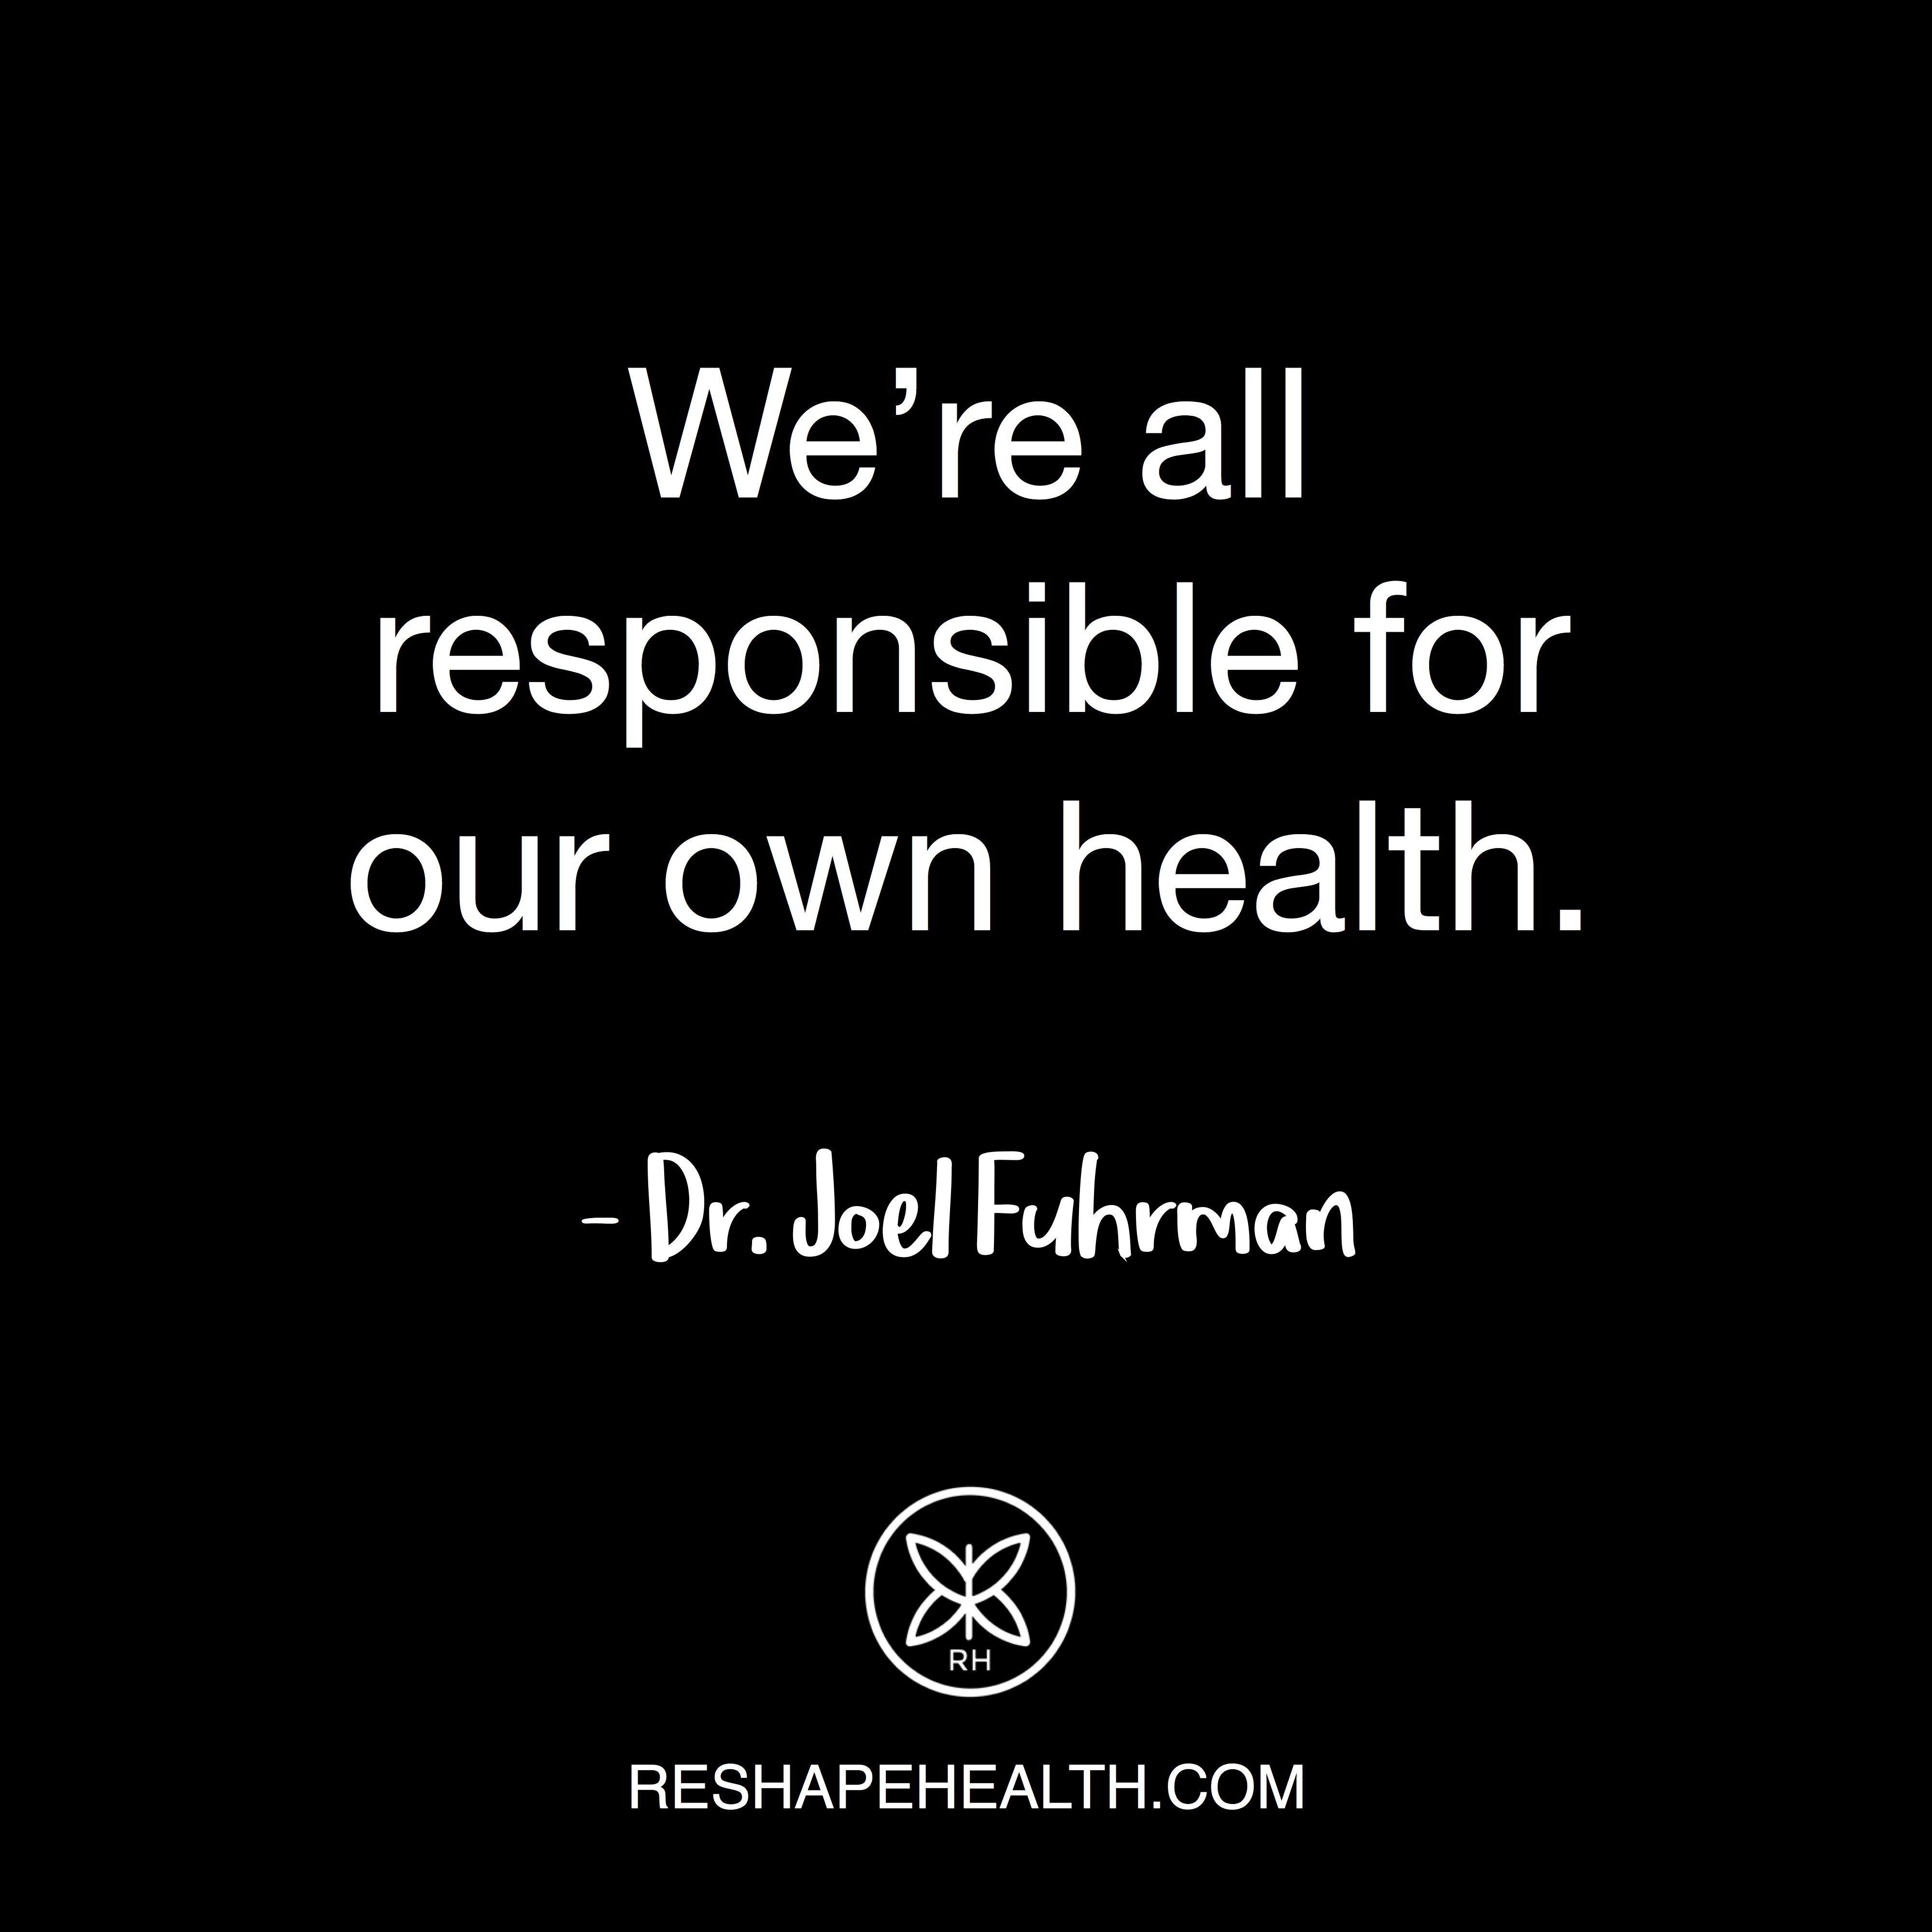 We re all responsible for our own health